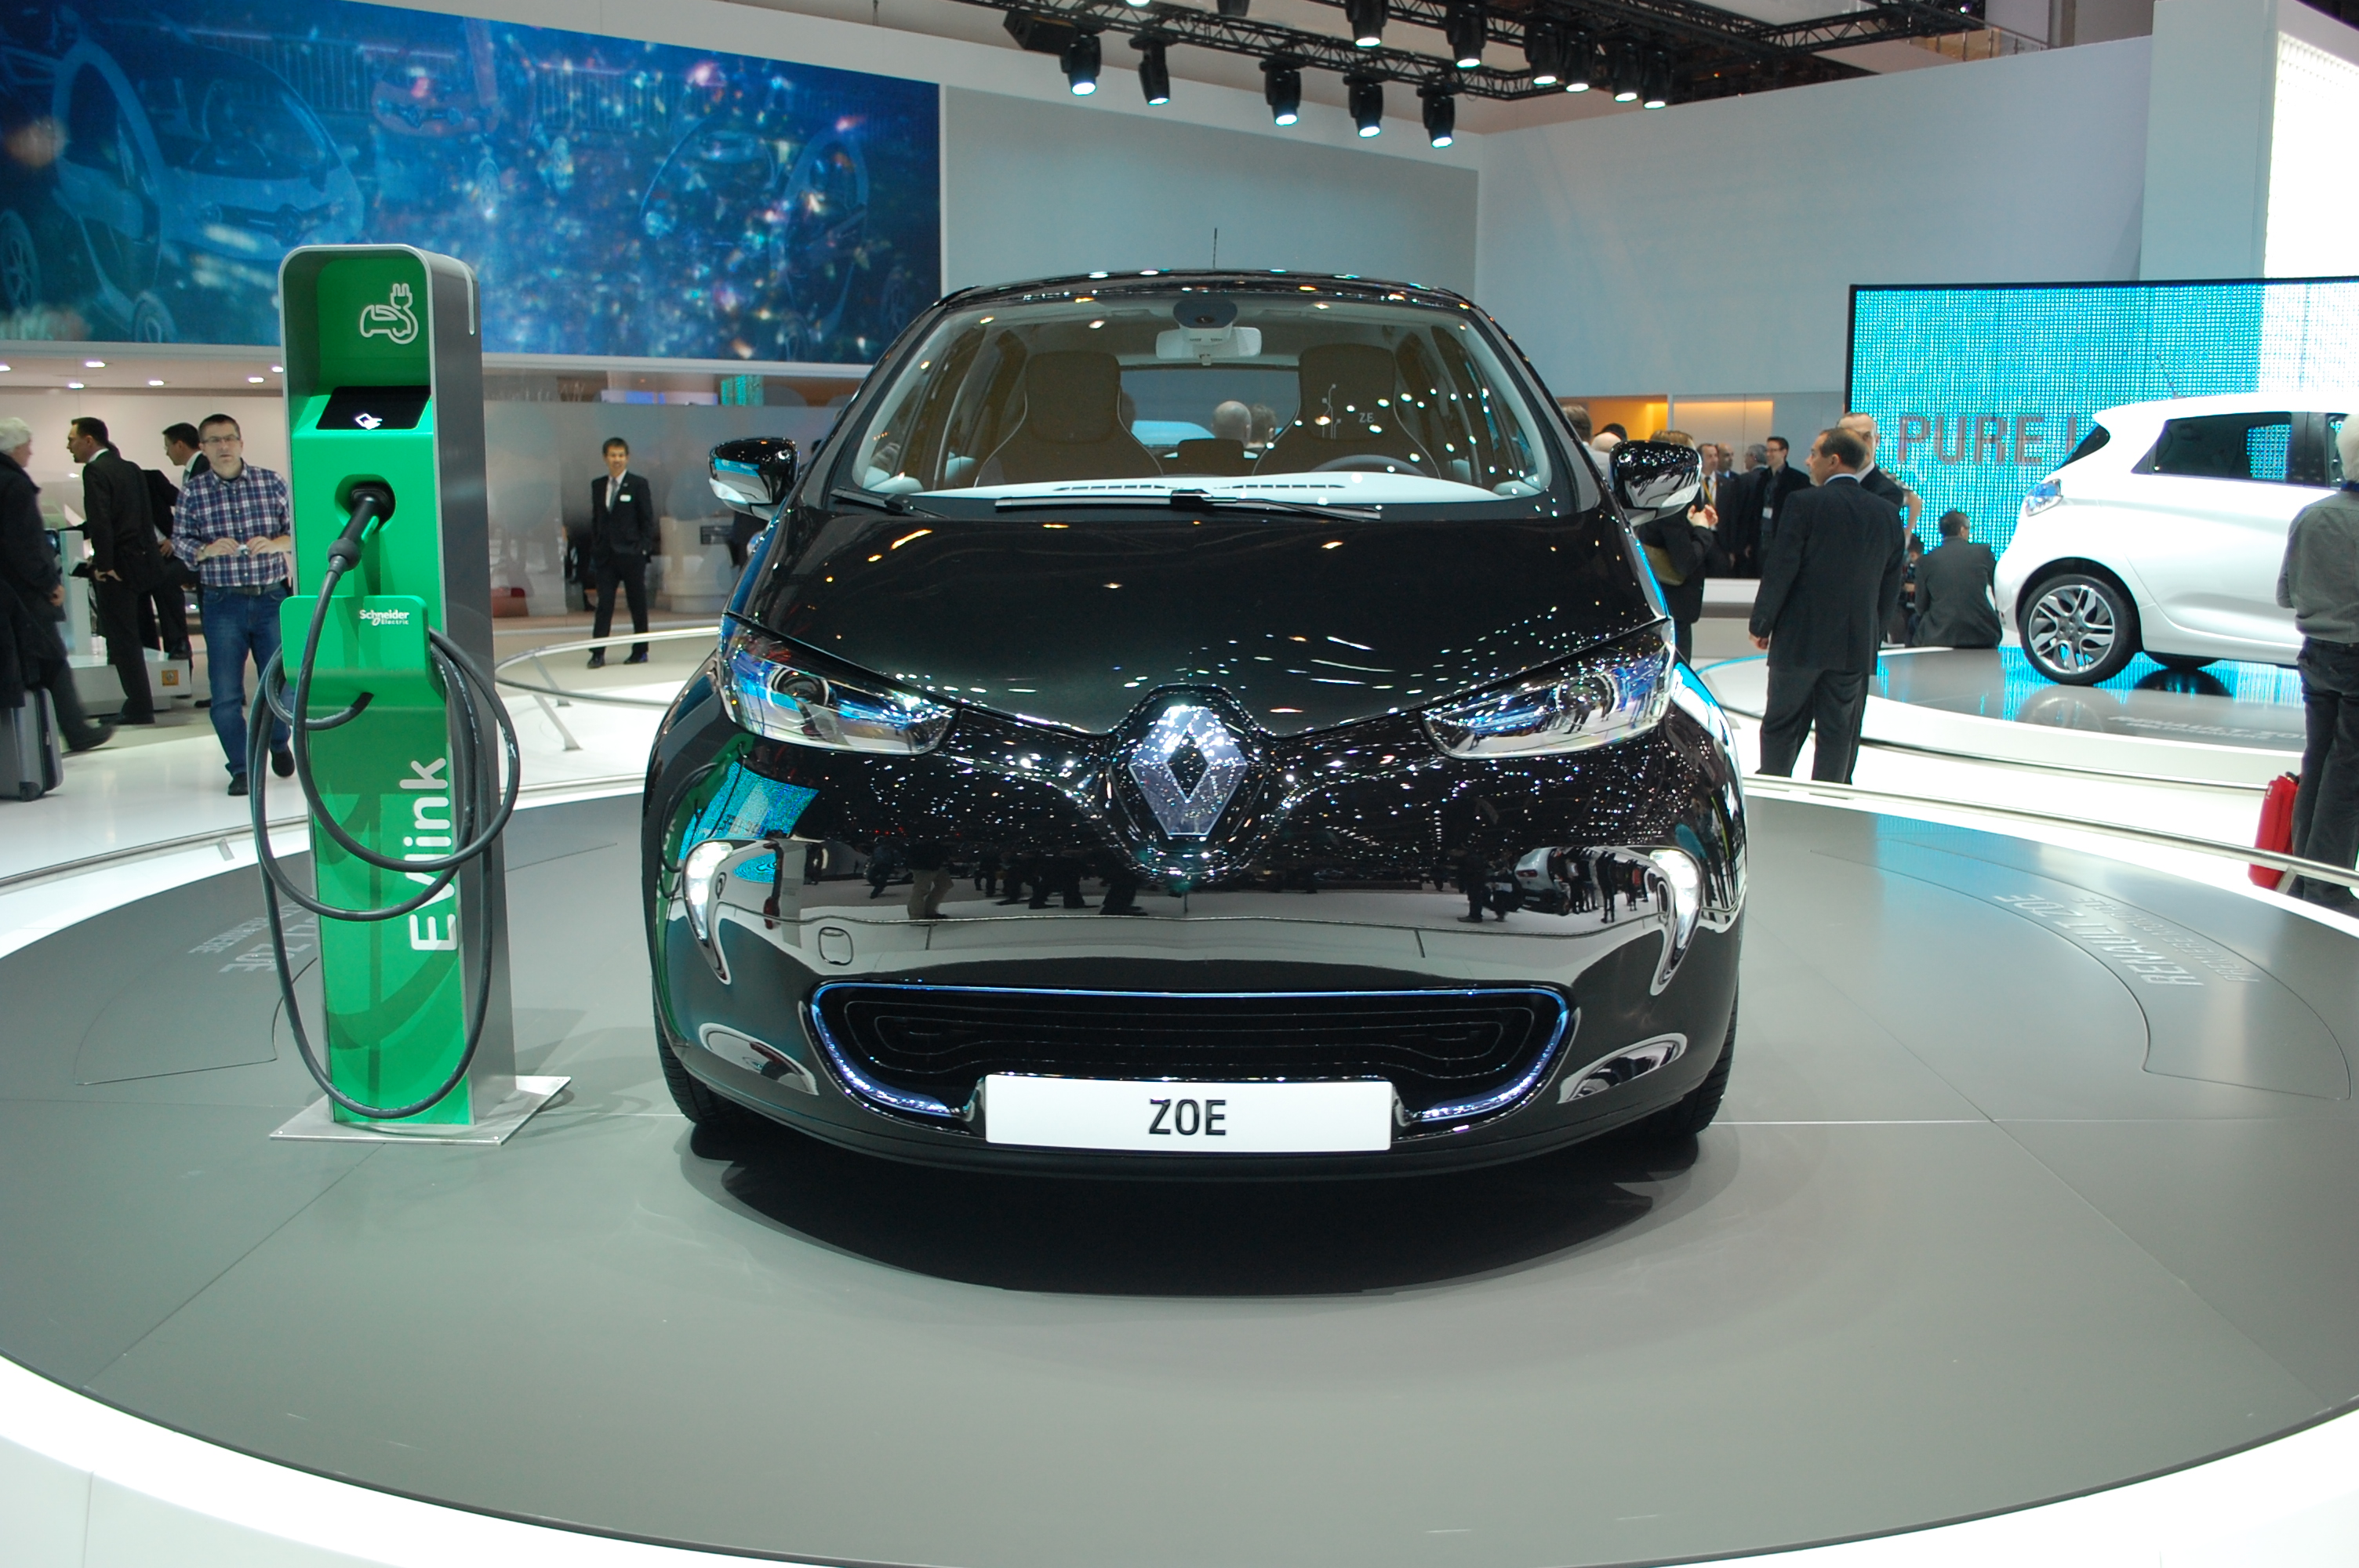 2013 Renault Zoe A Stylish Normal Complement To The